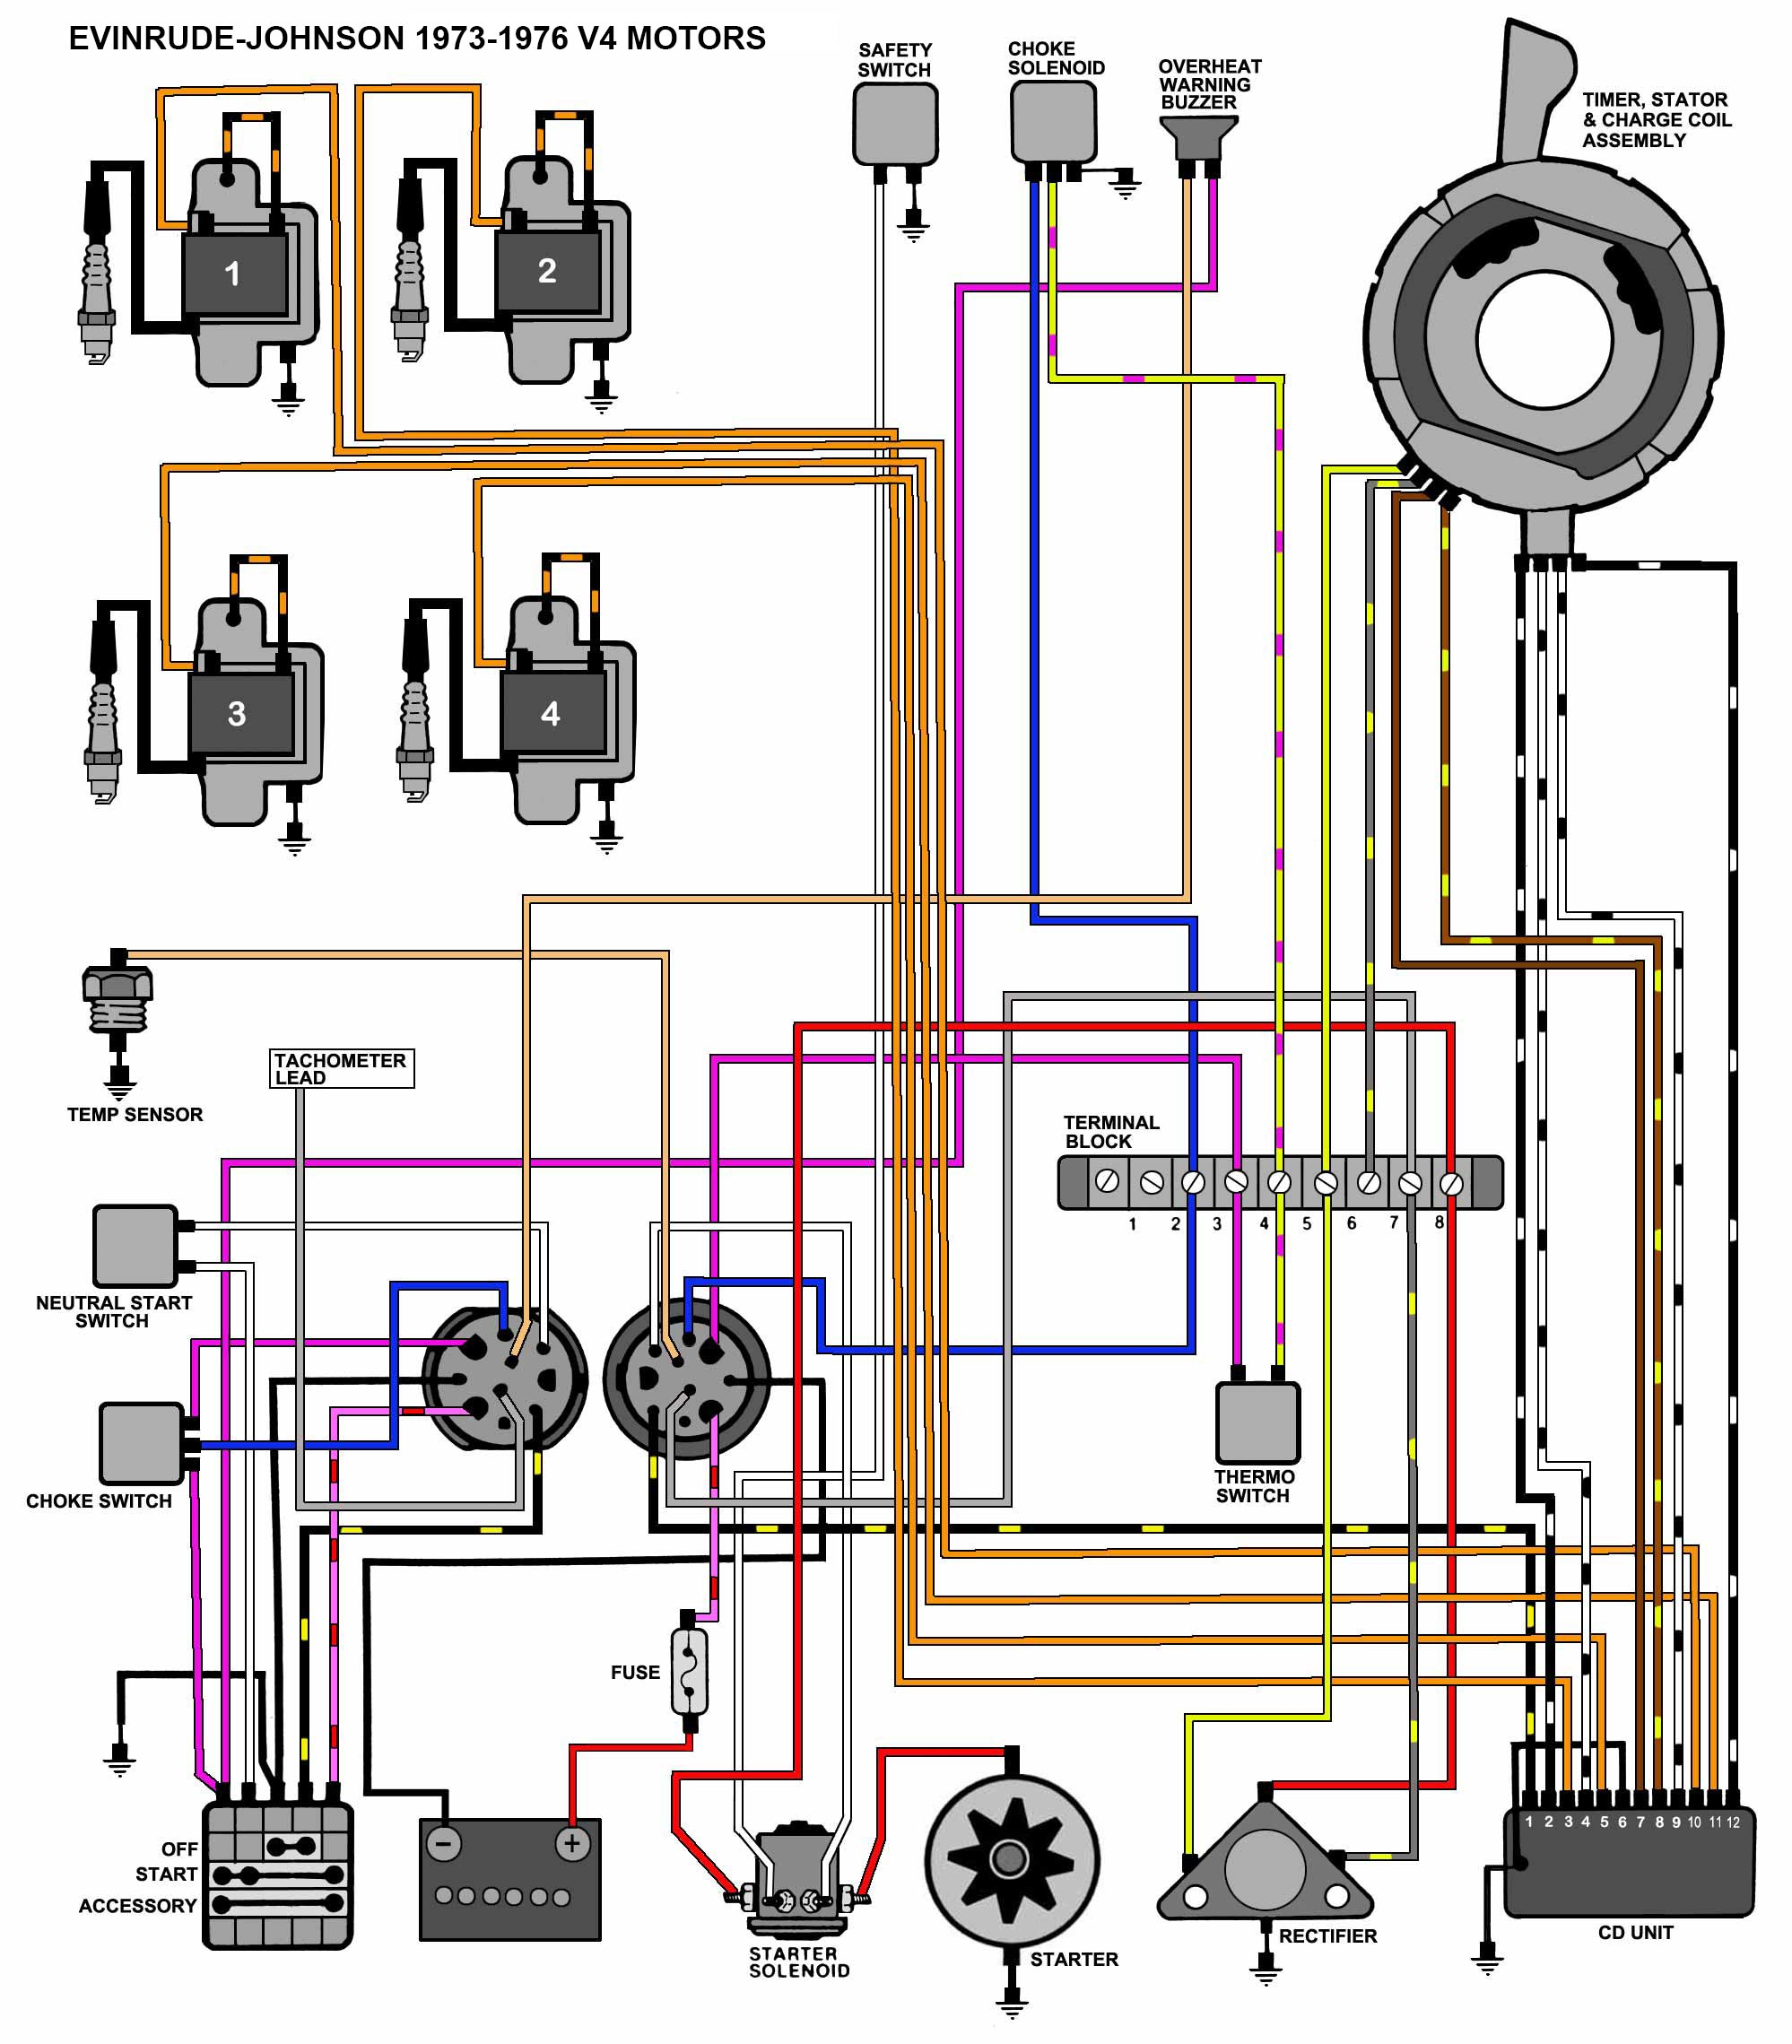 [SCHEMATICS_43NM]  A59BEAD 1978 Johnson 25 Outboard Wiring Diagram | Wiring Library | 25 Hp Johnson Outboard Wiring Diagram |  | Wiring Library